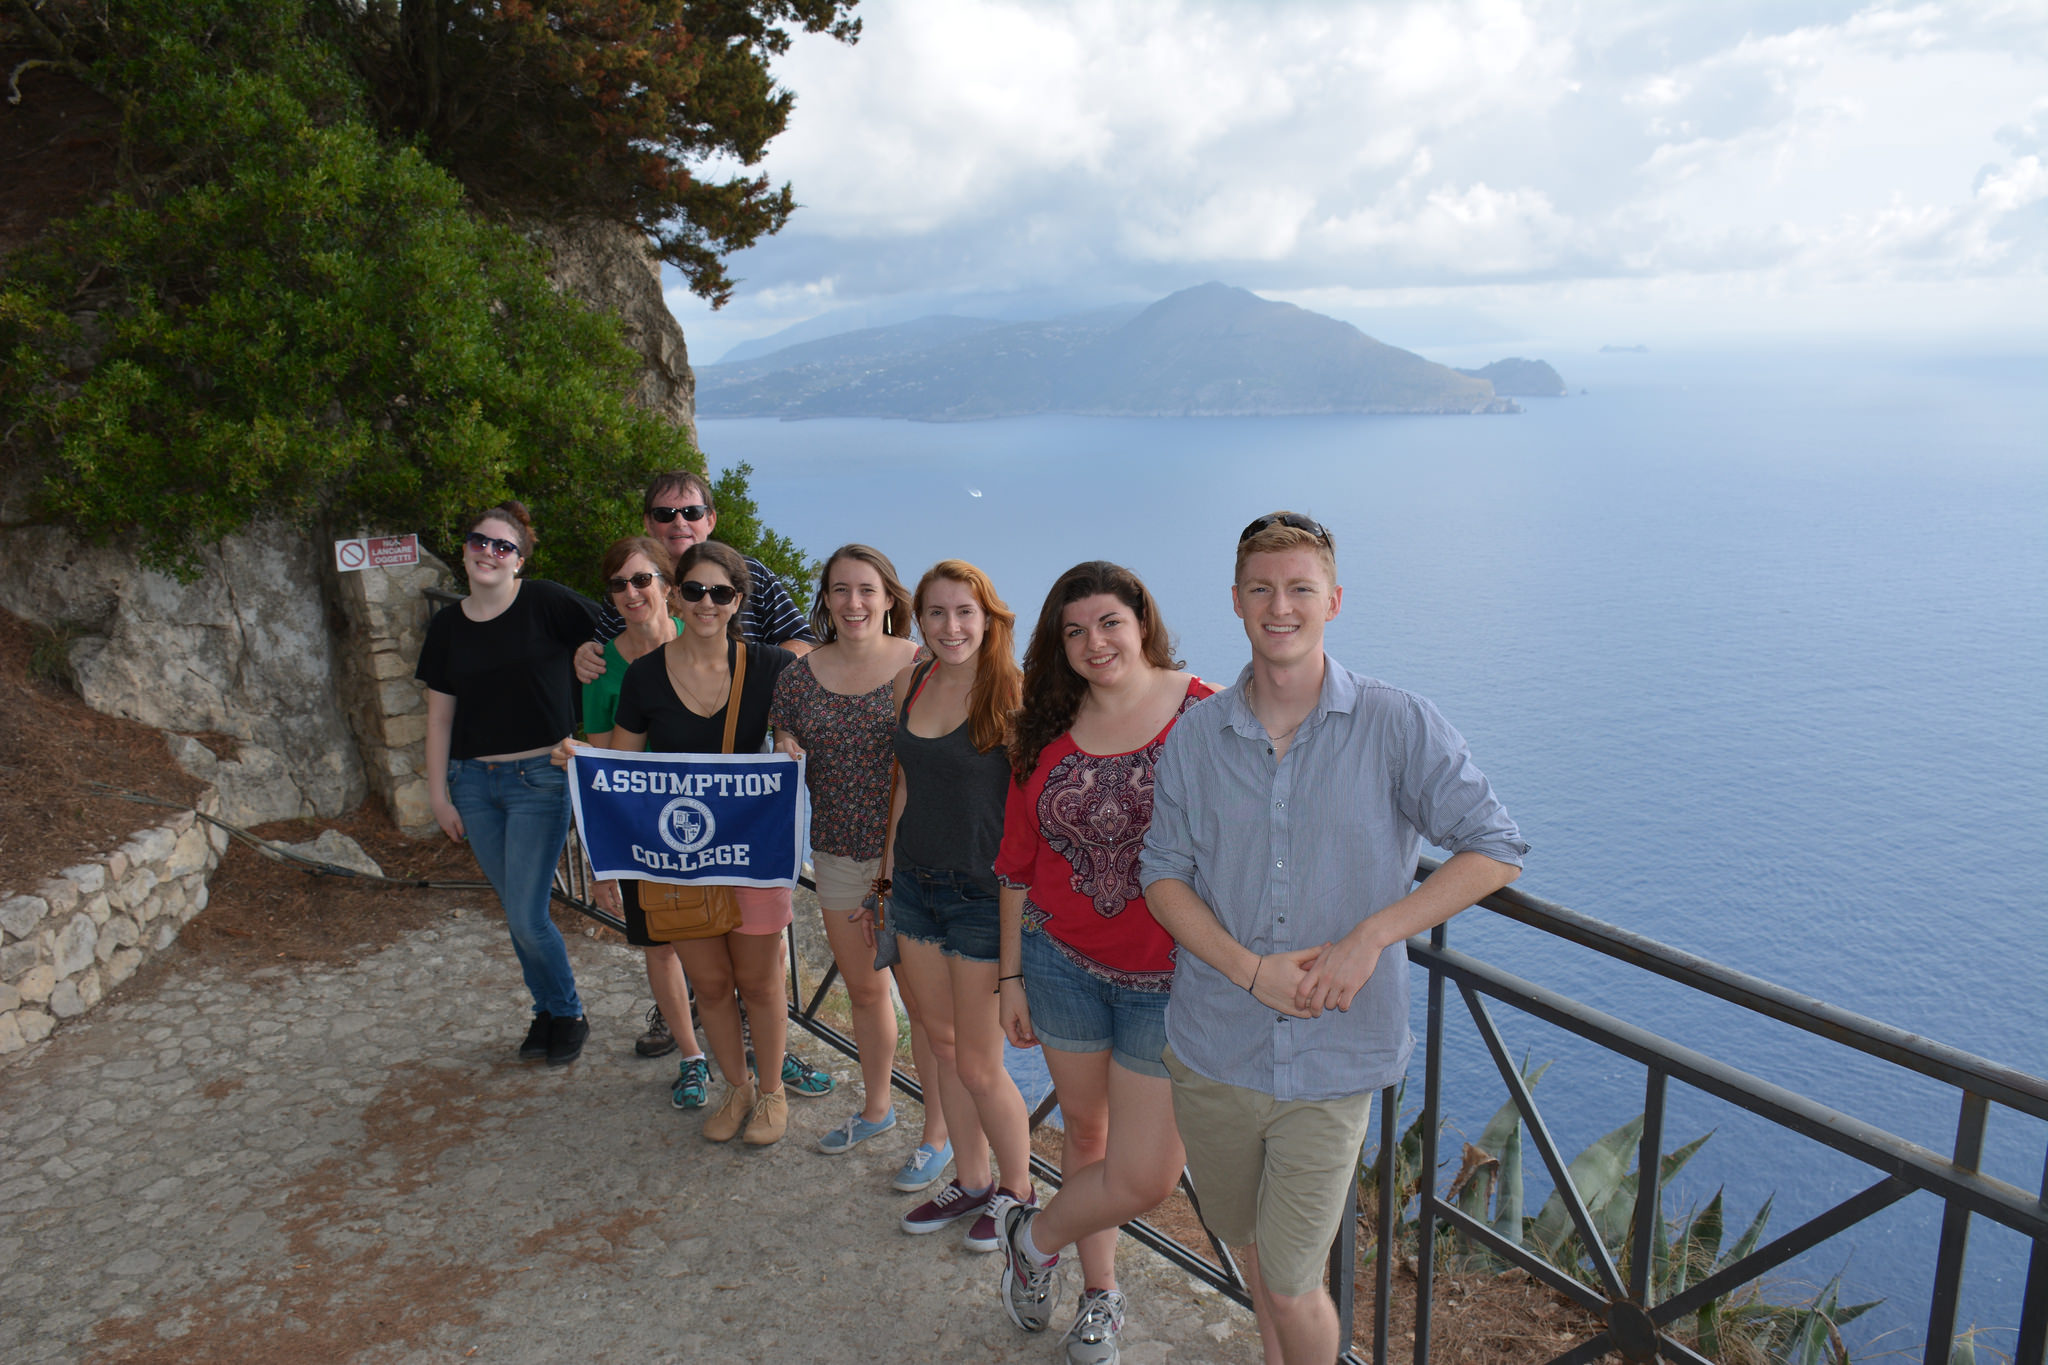 Assumption students studying in Rome on one of many excursions throughout Italy.